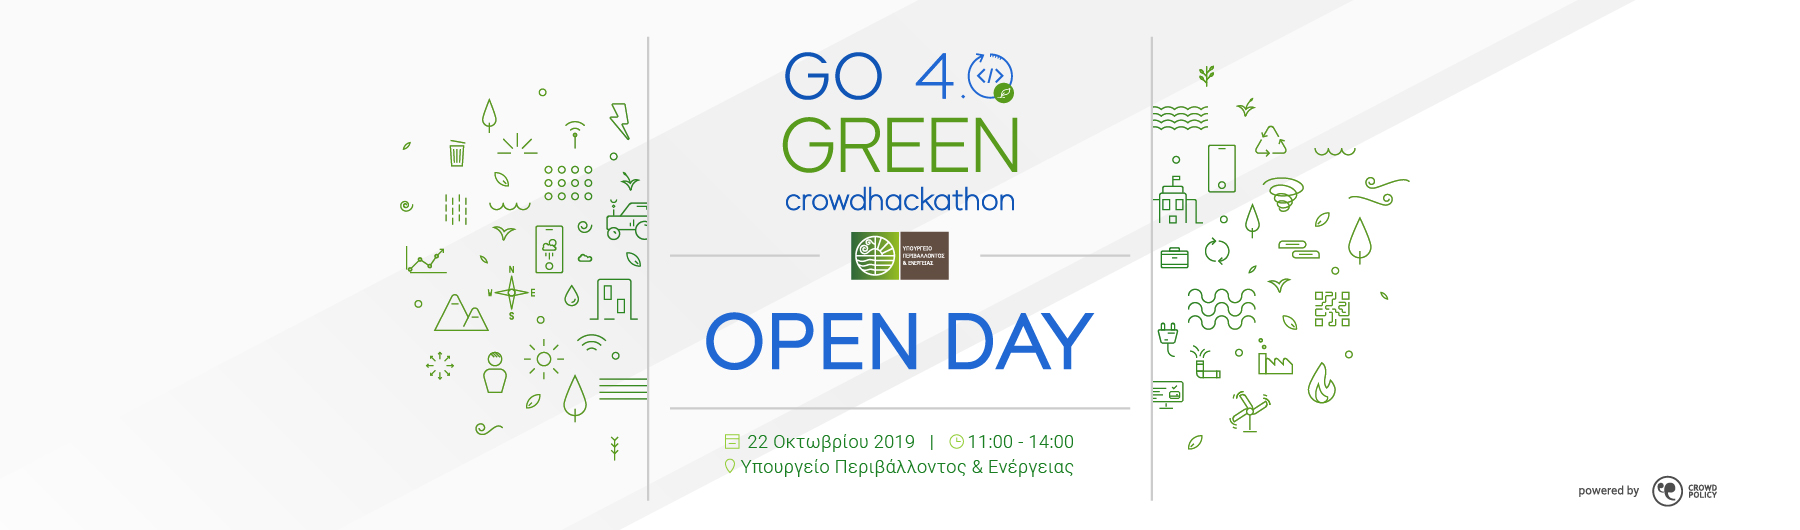 Open Day Go 4 Green